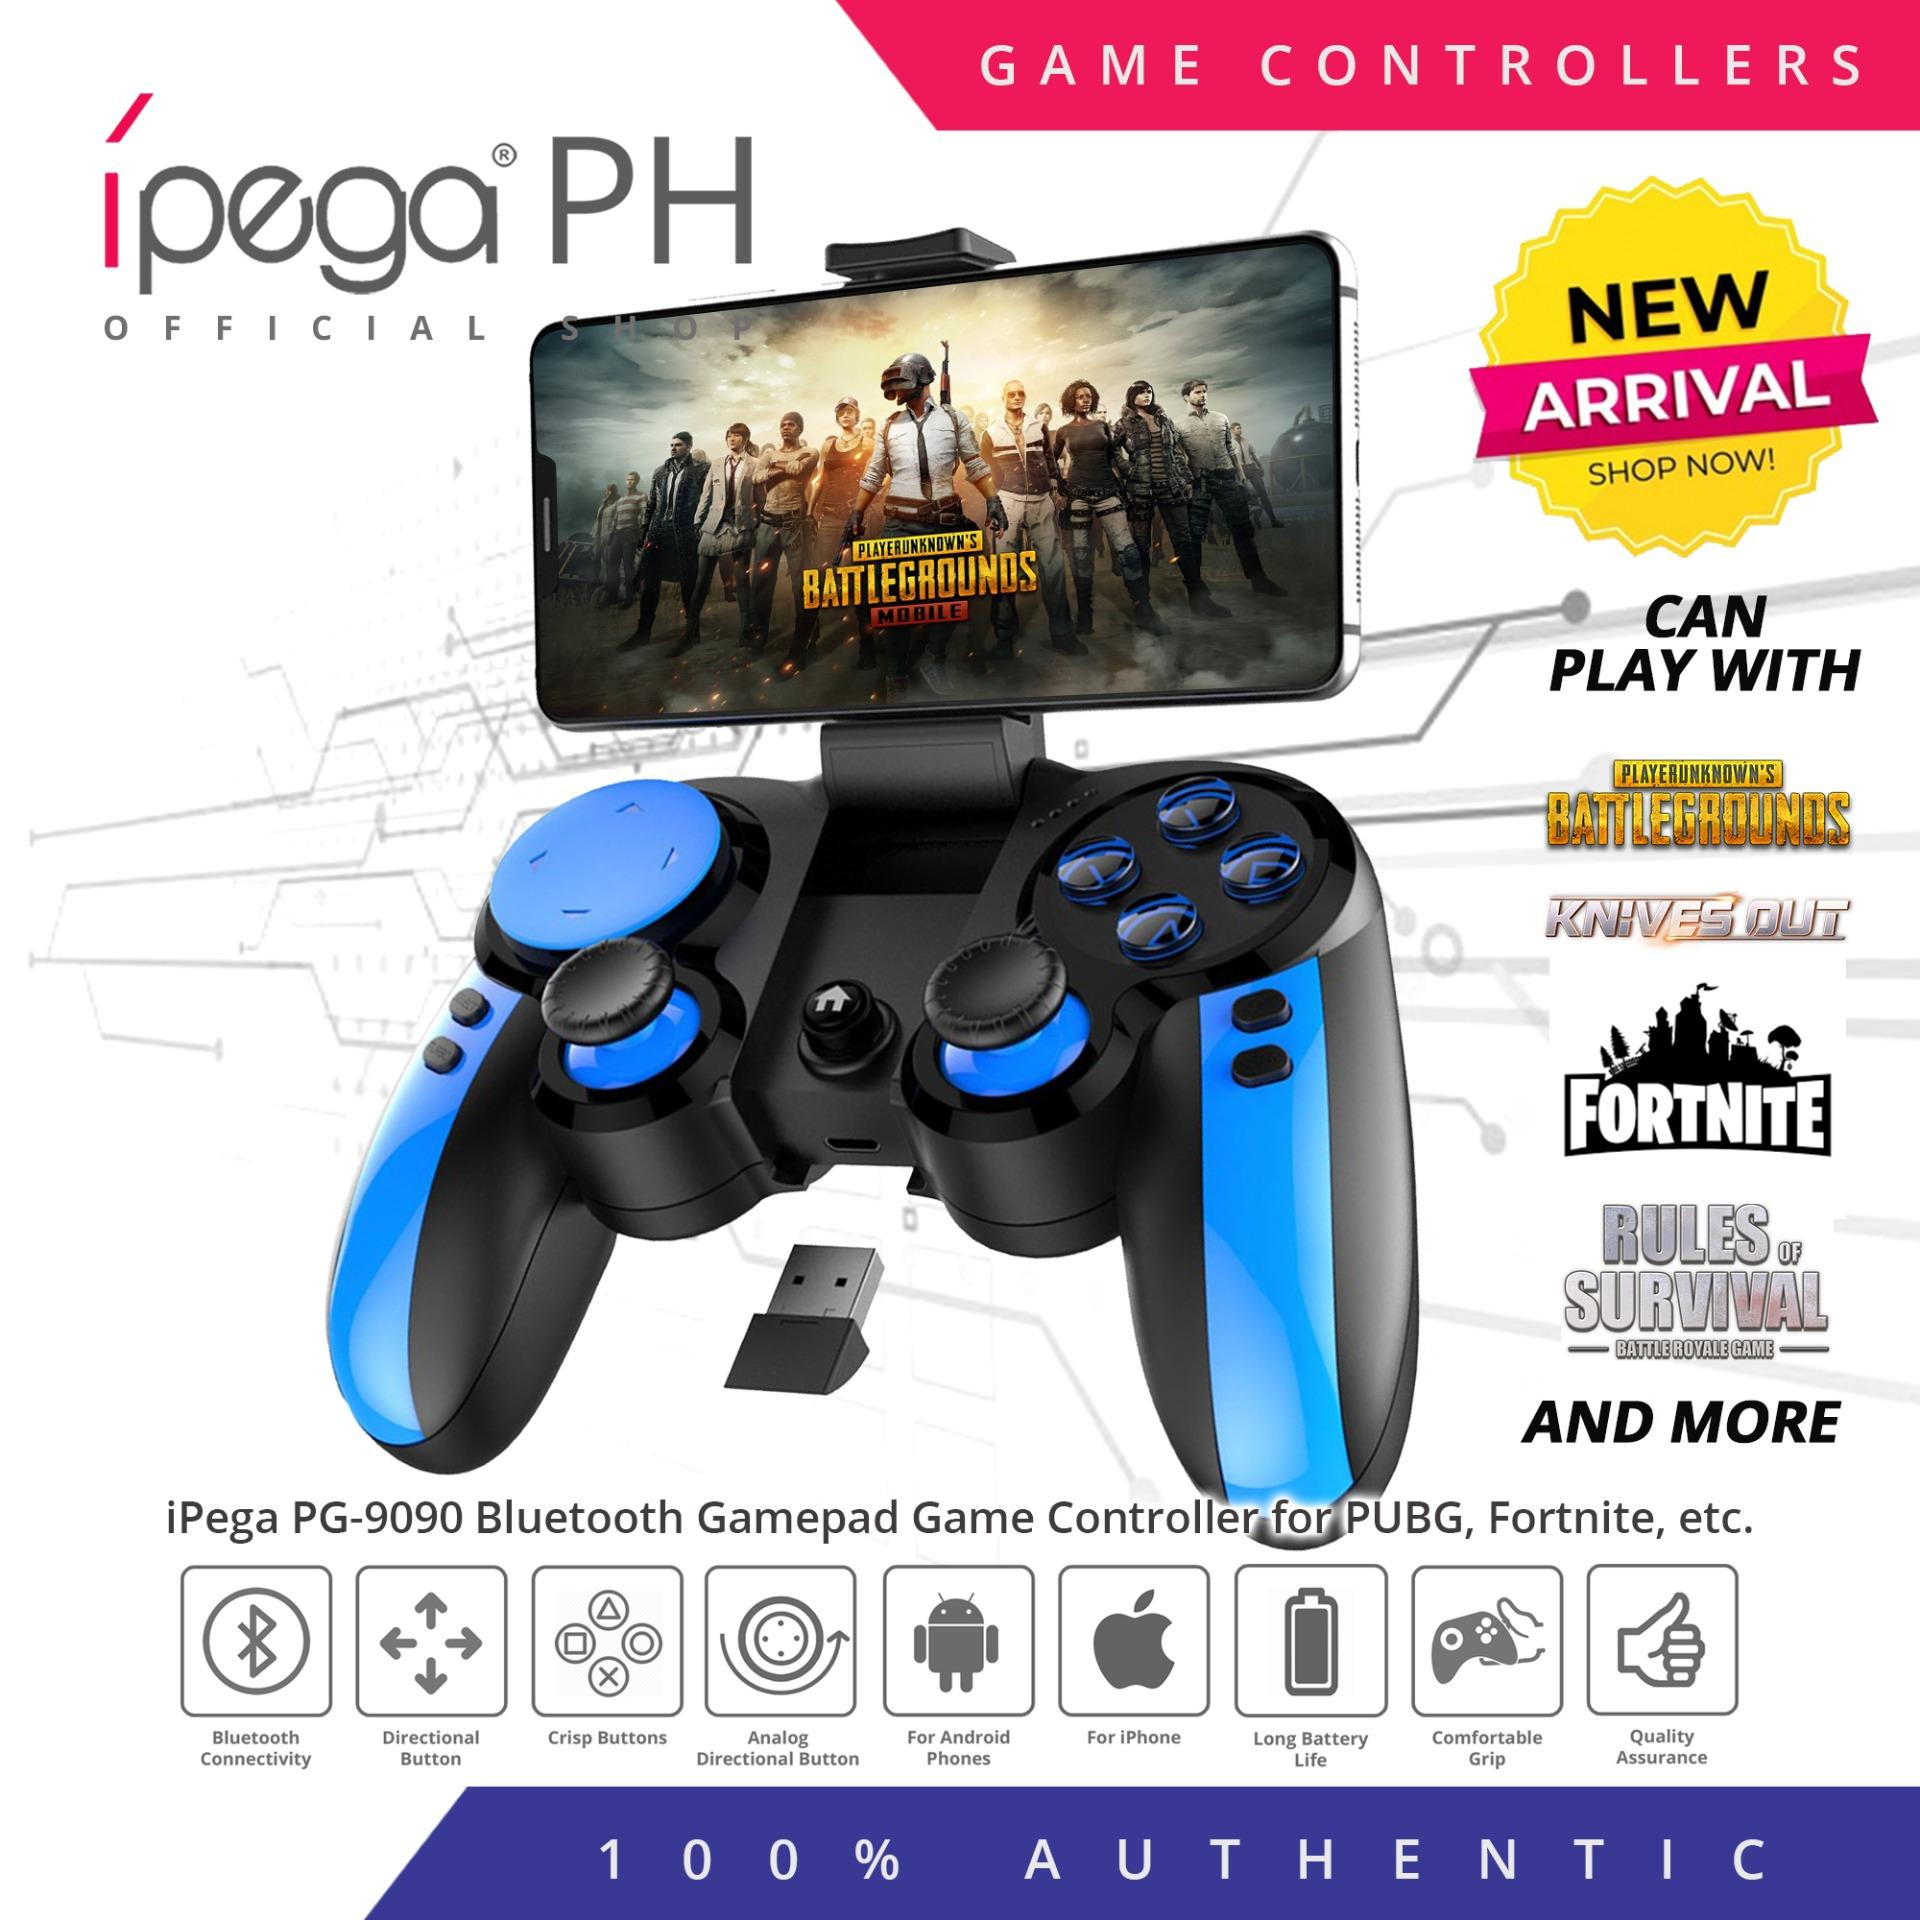 Ipega PG-9090 Blue ELF 2 4G Bluetooth Wireless Game Controller for Android  smartphones and tablets